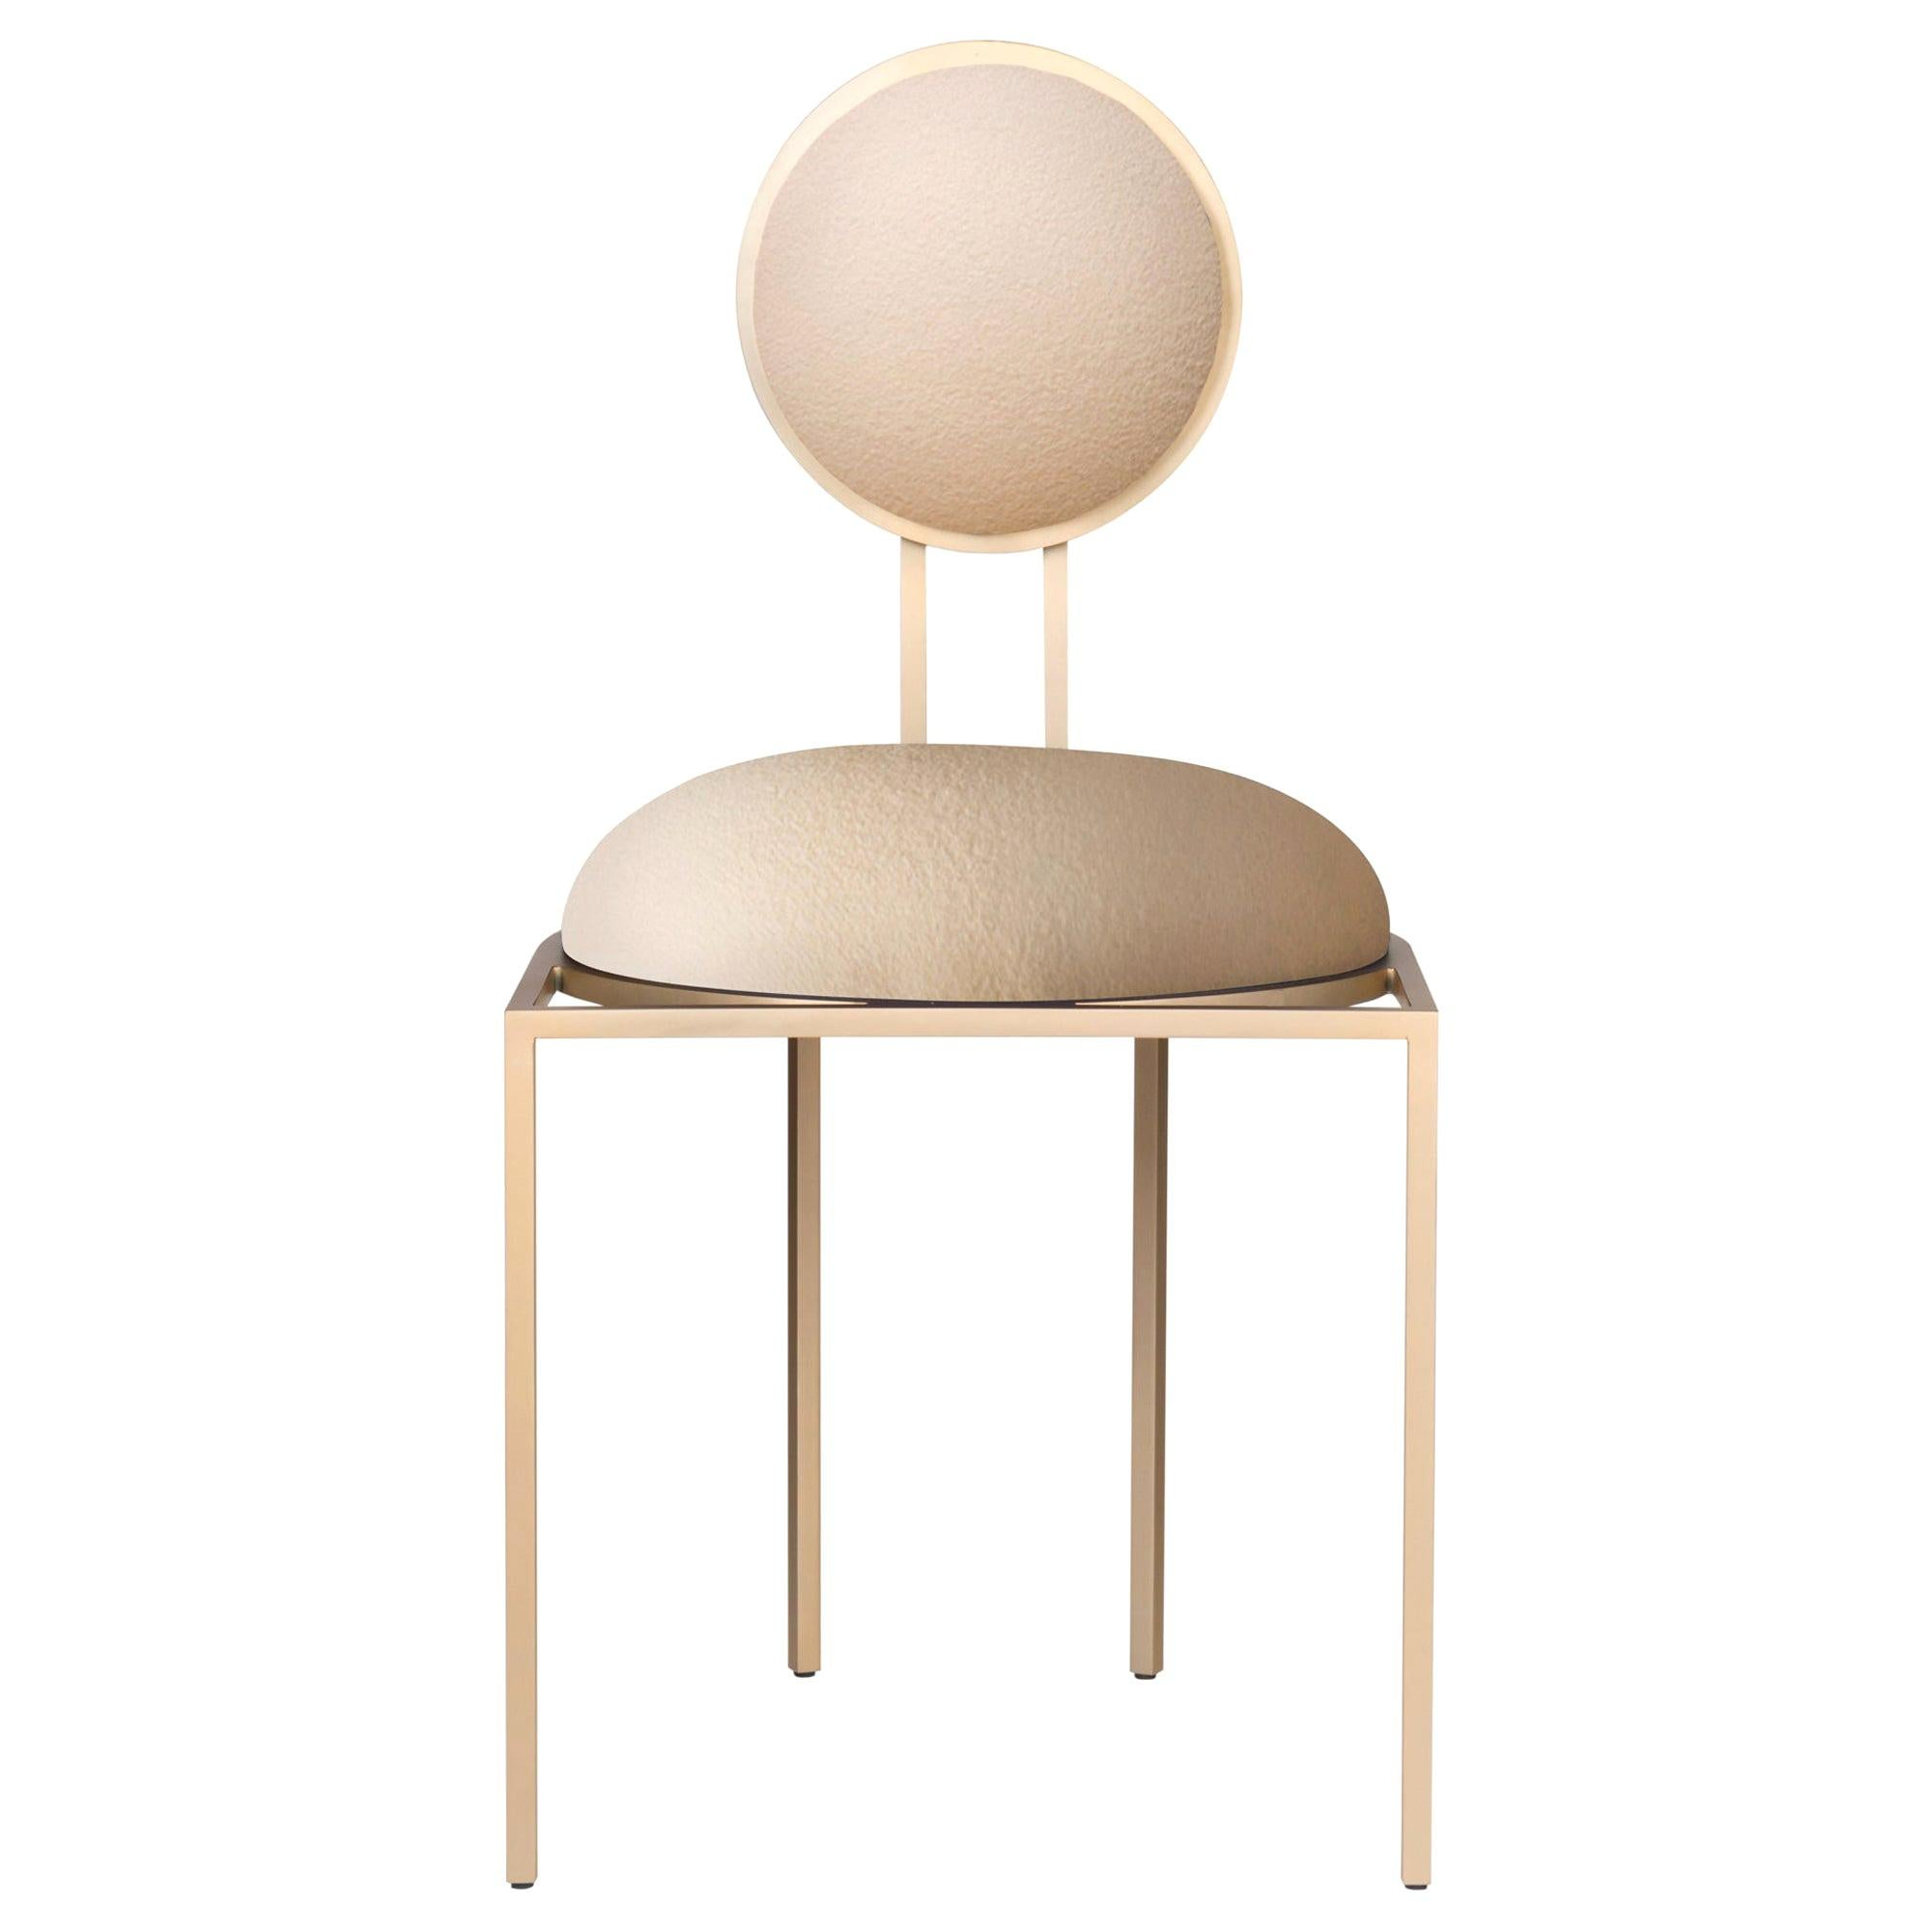 Orbit Dining Chair in Cream Wool Fabric and Brushed Brass, by Lara Bohinc